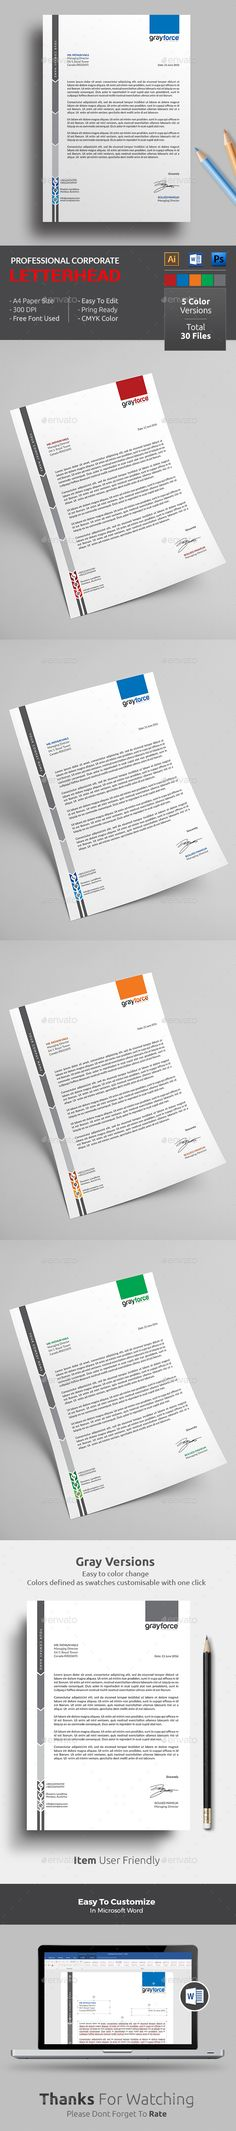 Corporate Letterhead Template with super modern and Corporate look.